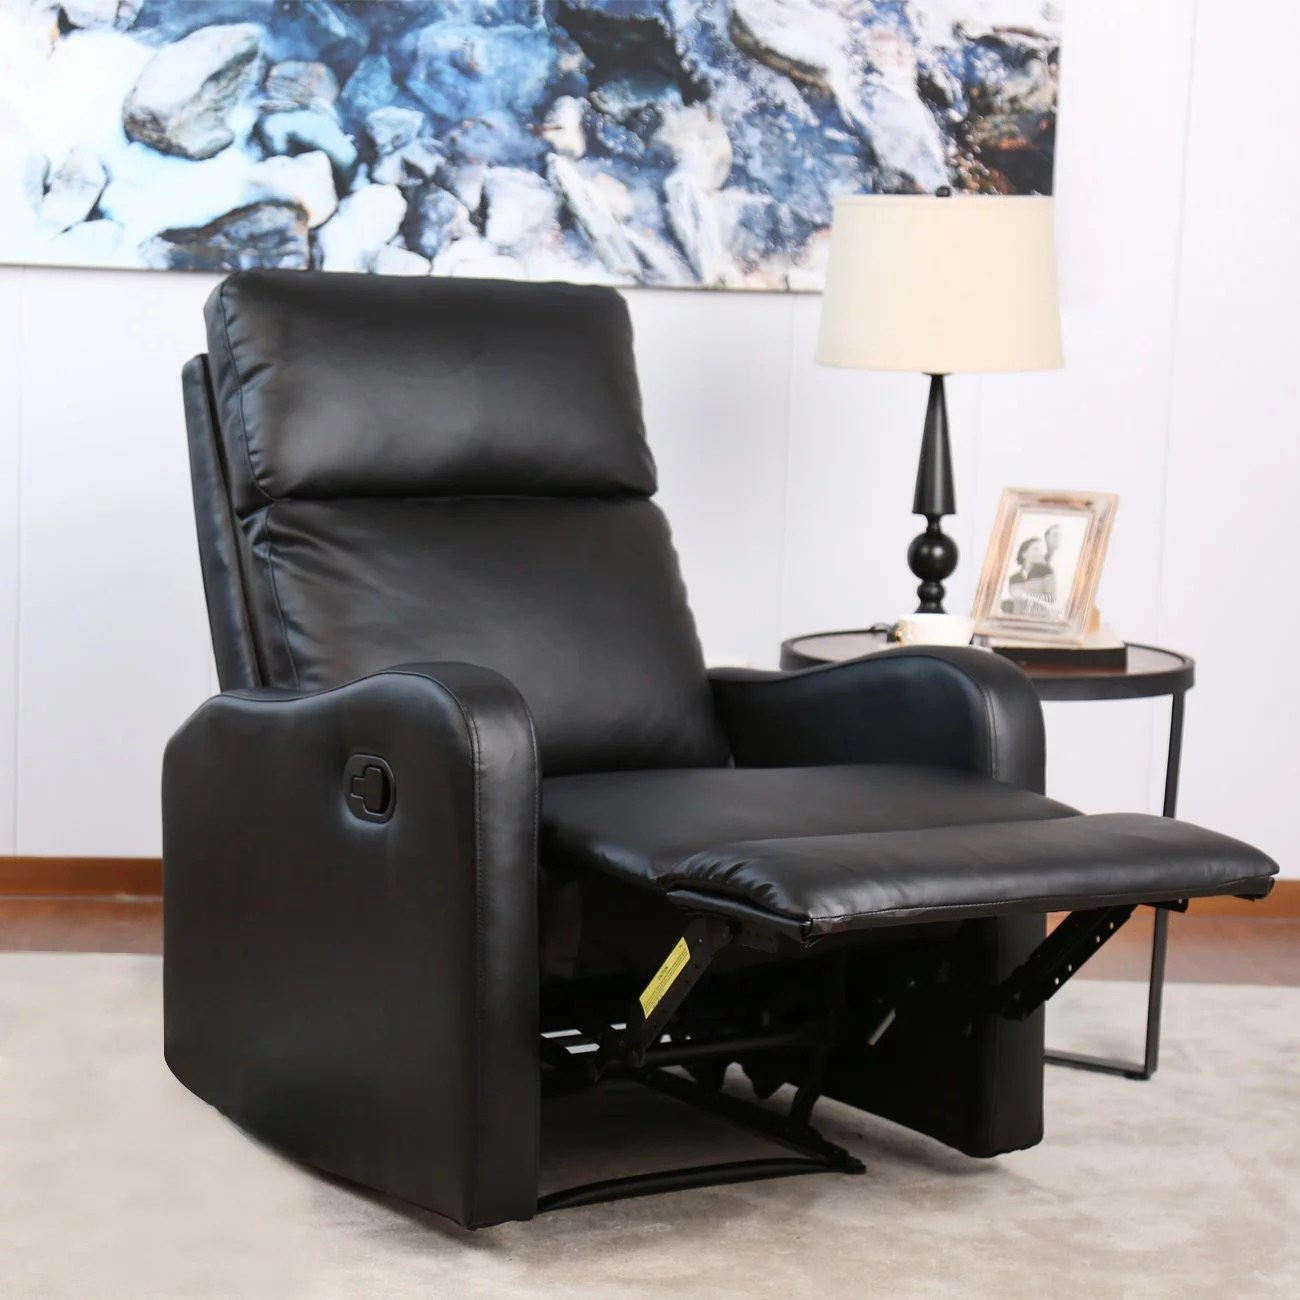 Modern Recliner Chair Bonzy Recliner Chair Black Leather Chairs For Modern Living Room Durable Framework